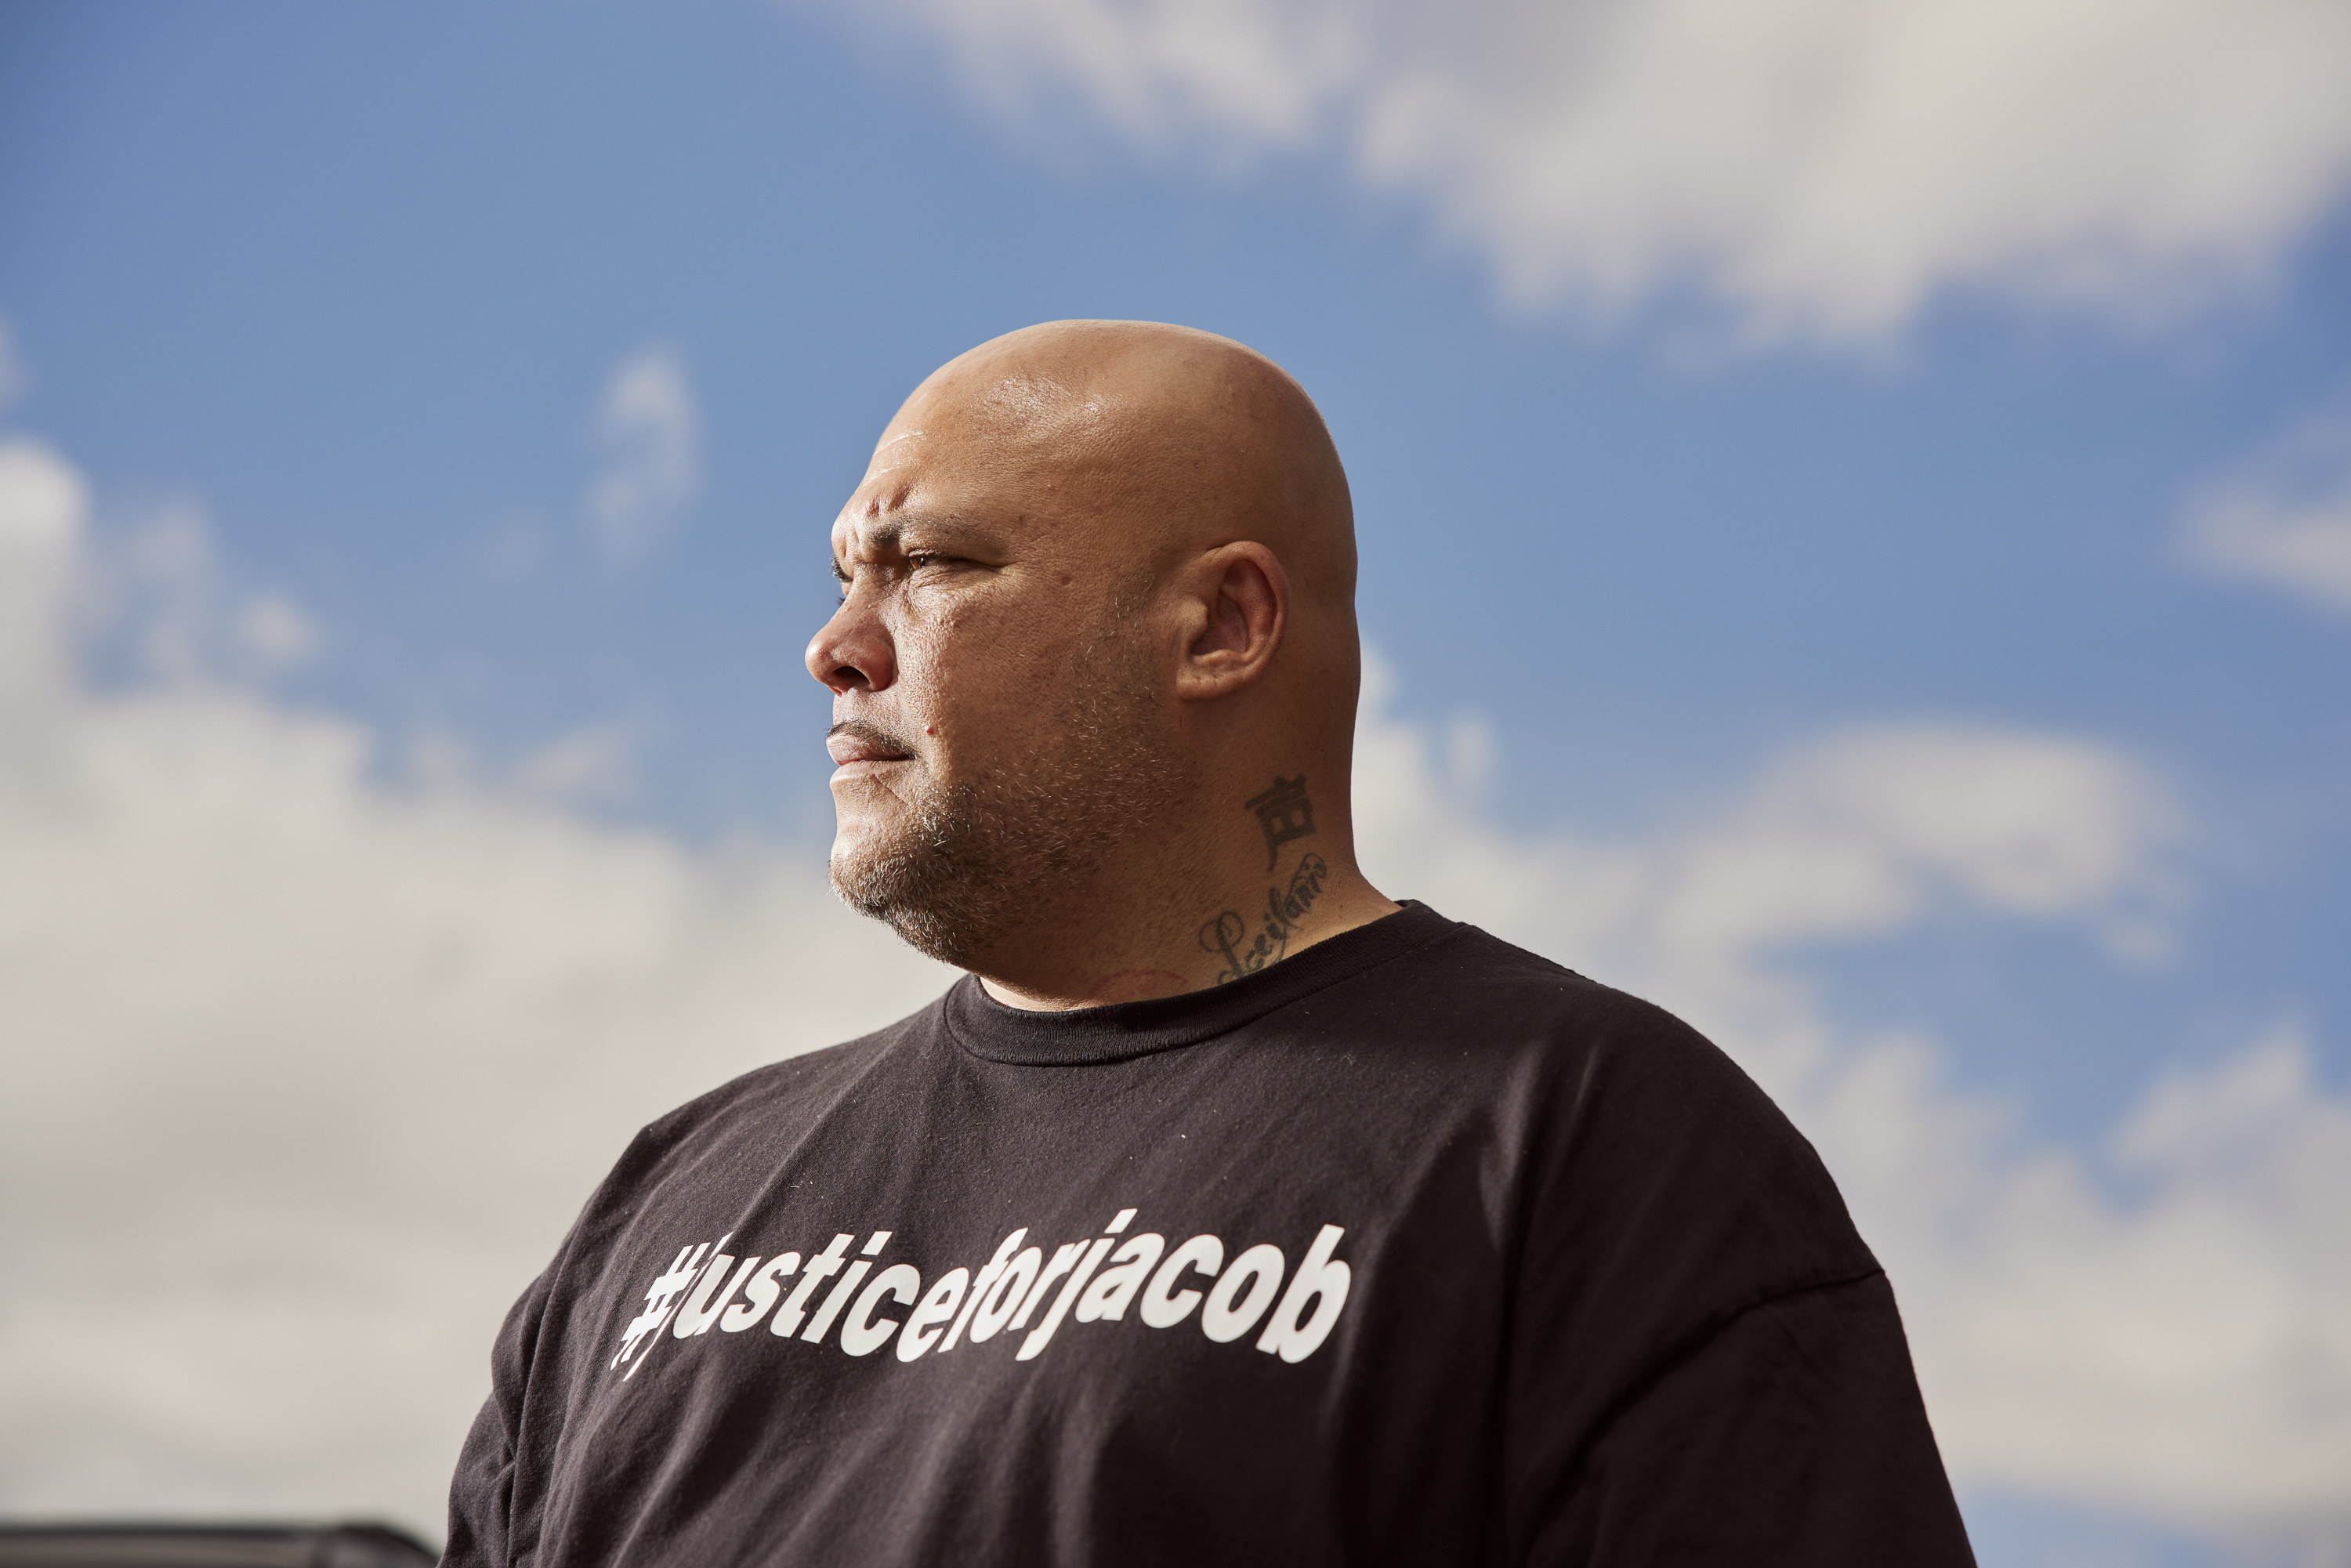 Roland Harris, photographed among the clouds, with a T-shirt that reads #justiceforjacob